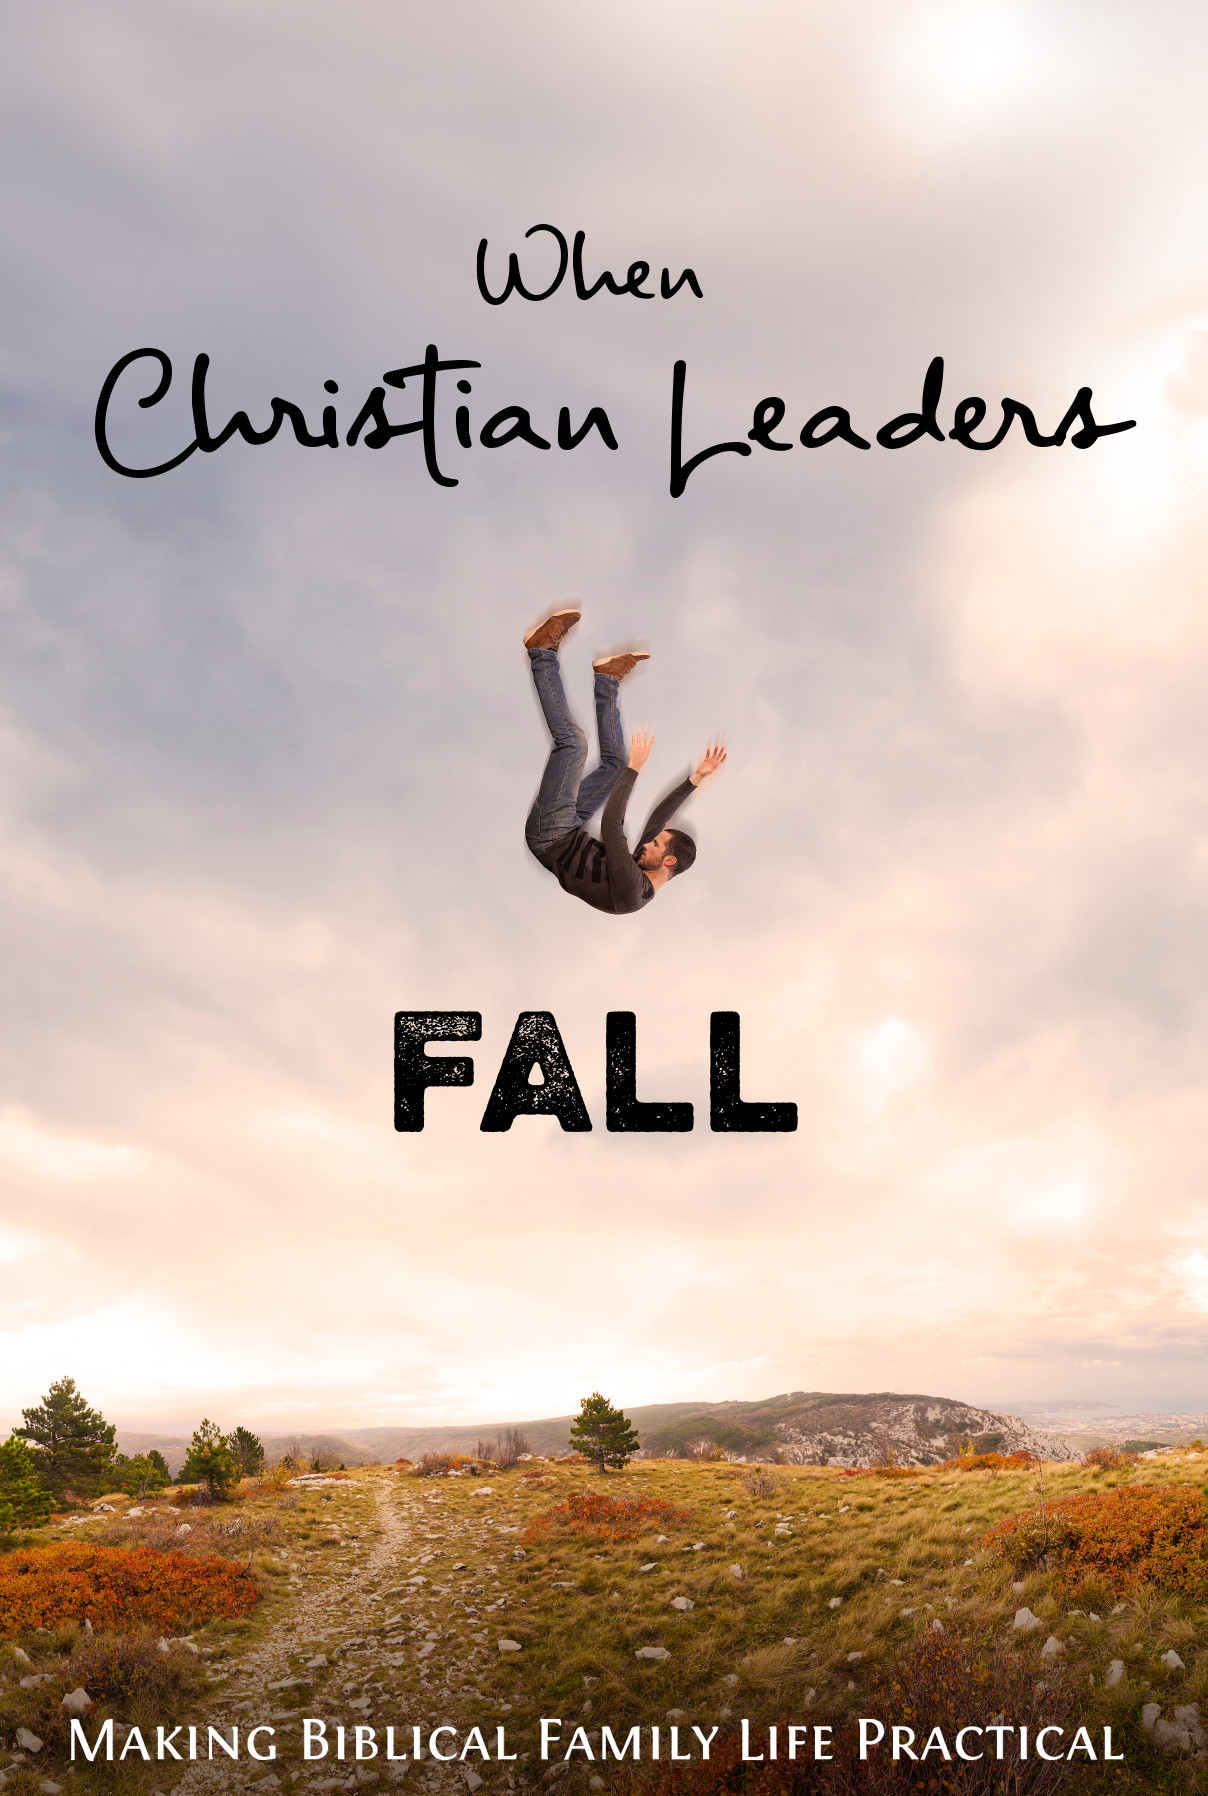 How should we respond when a Christian leader leaves the faith?